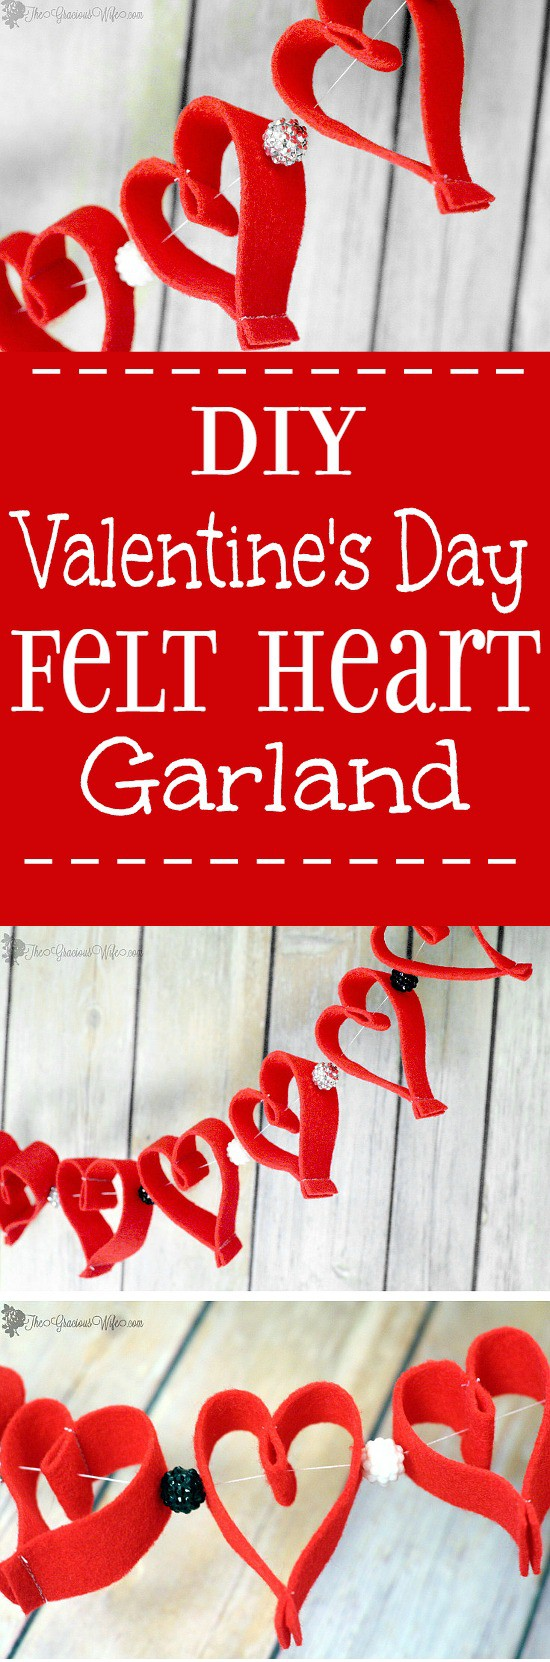 Valentine's Day Heart Felt Garland - Easy and frugal DIY heart felt garland for Valentine's Day decorations. Cute!